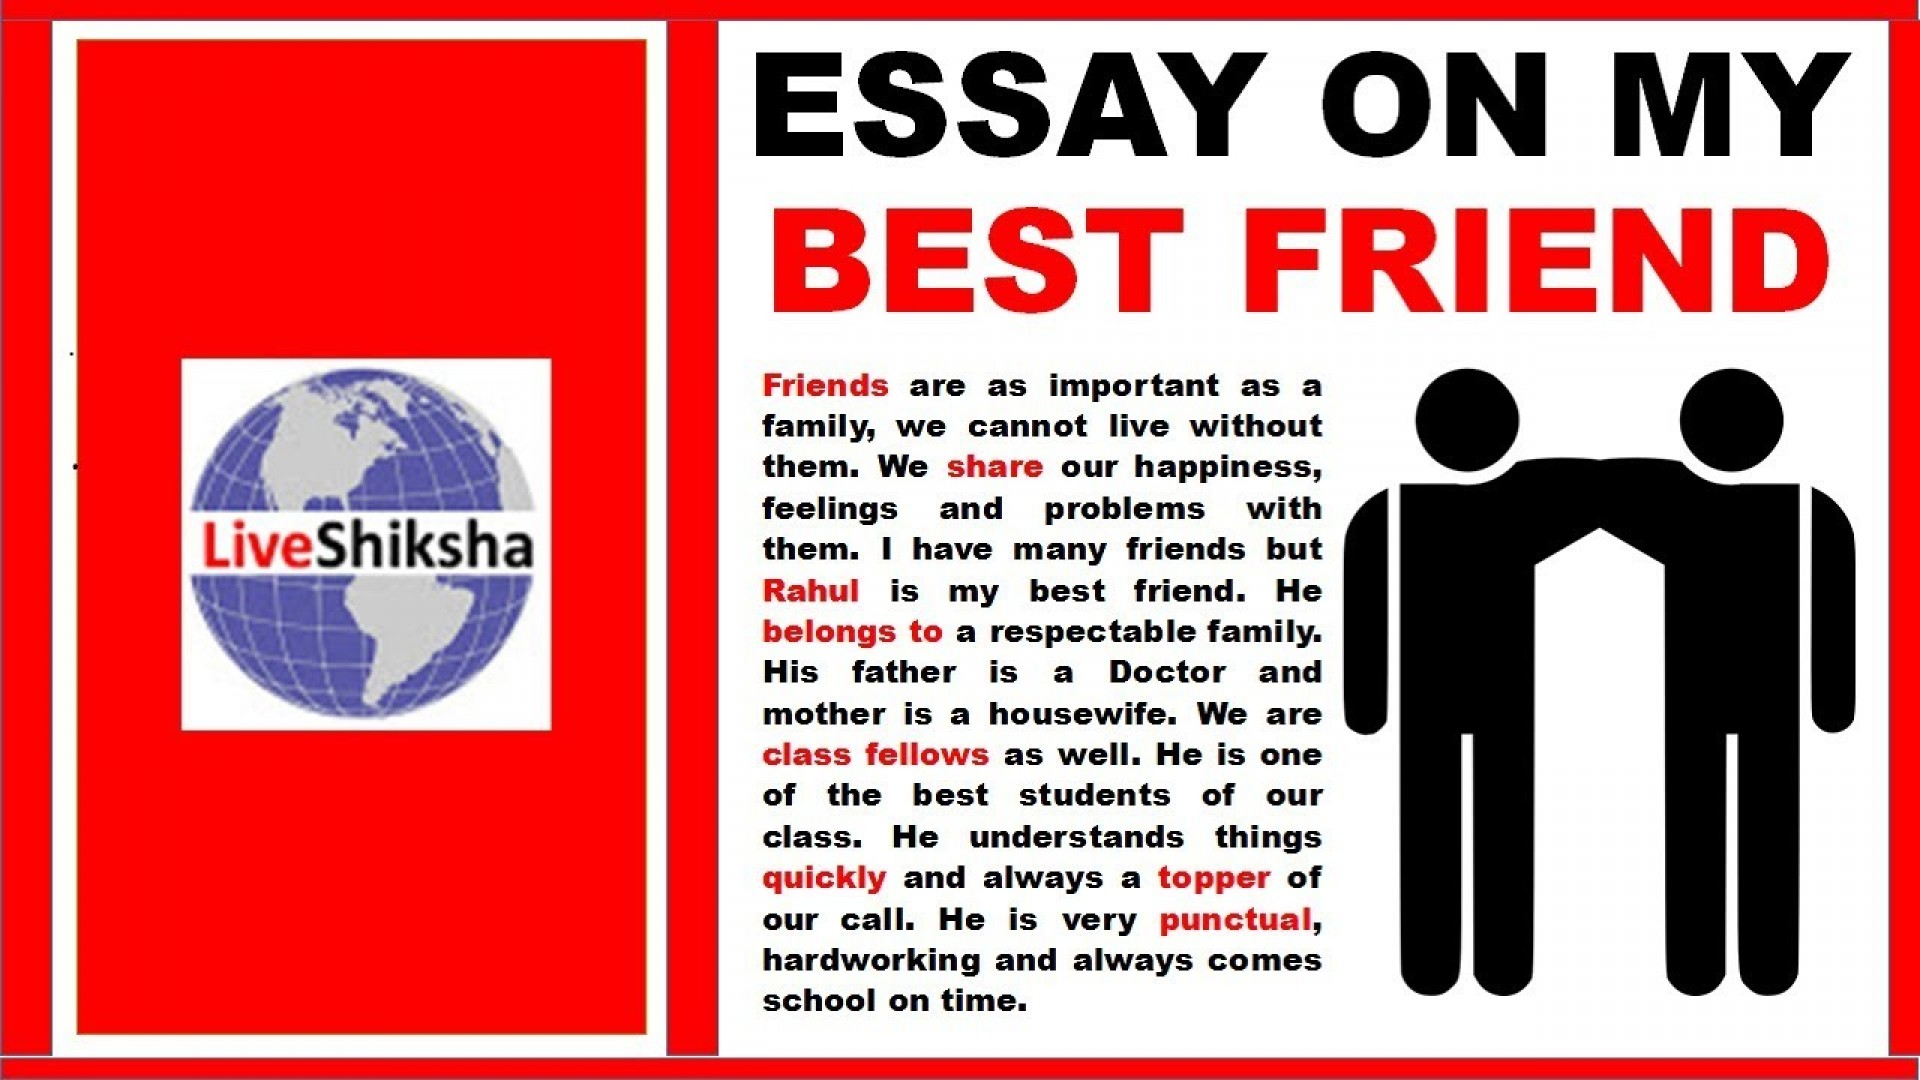 001 Maxresdefault My Best Friend Essay Marvelous For Class 2 In Hindi 6 Short Marathi 1920